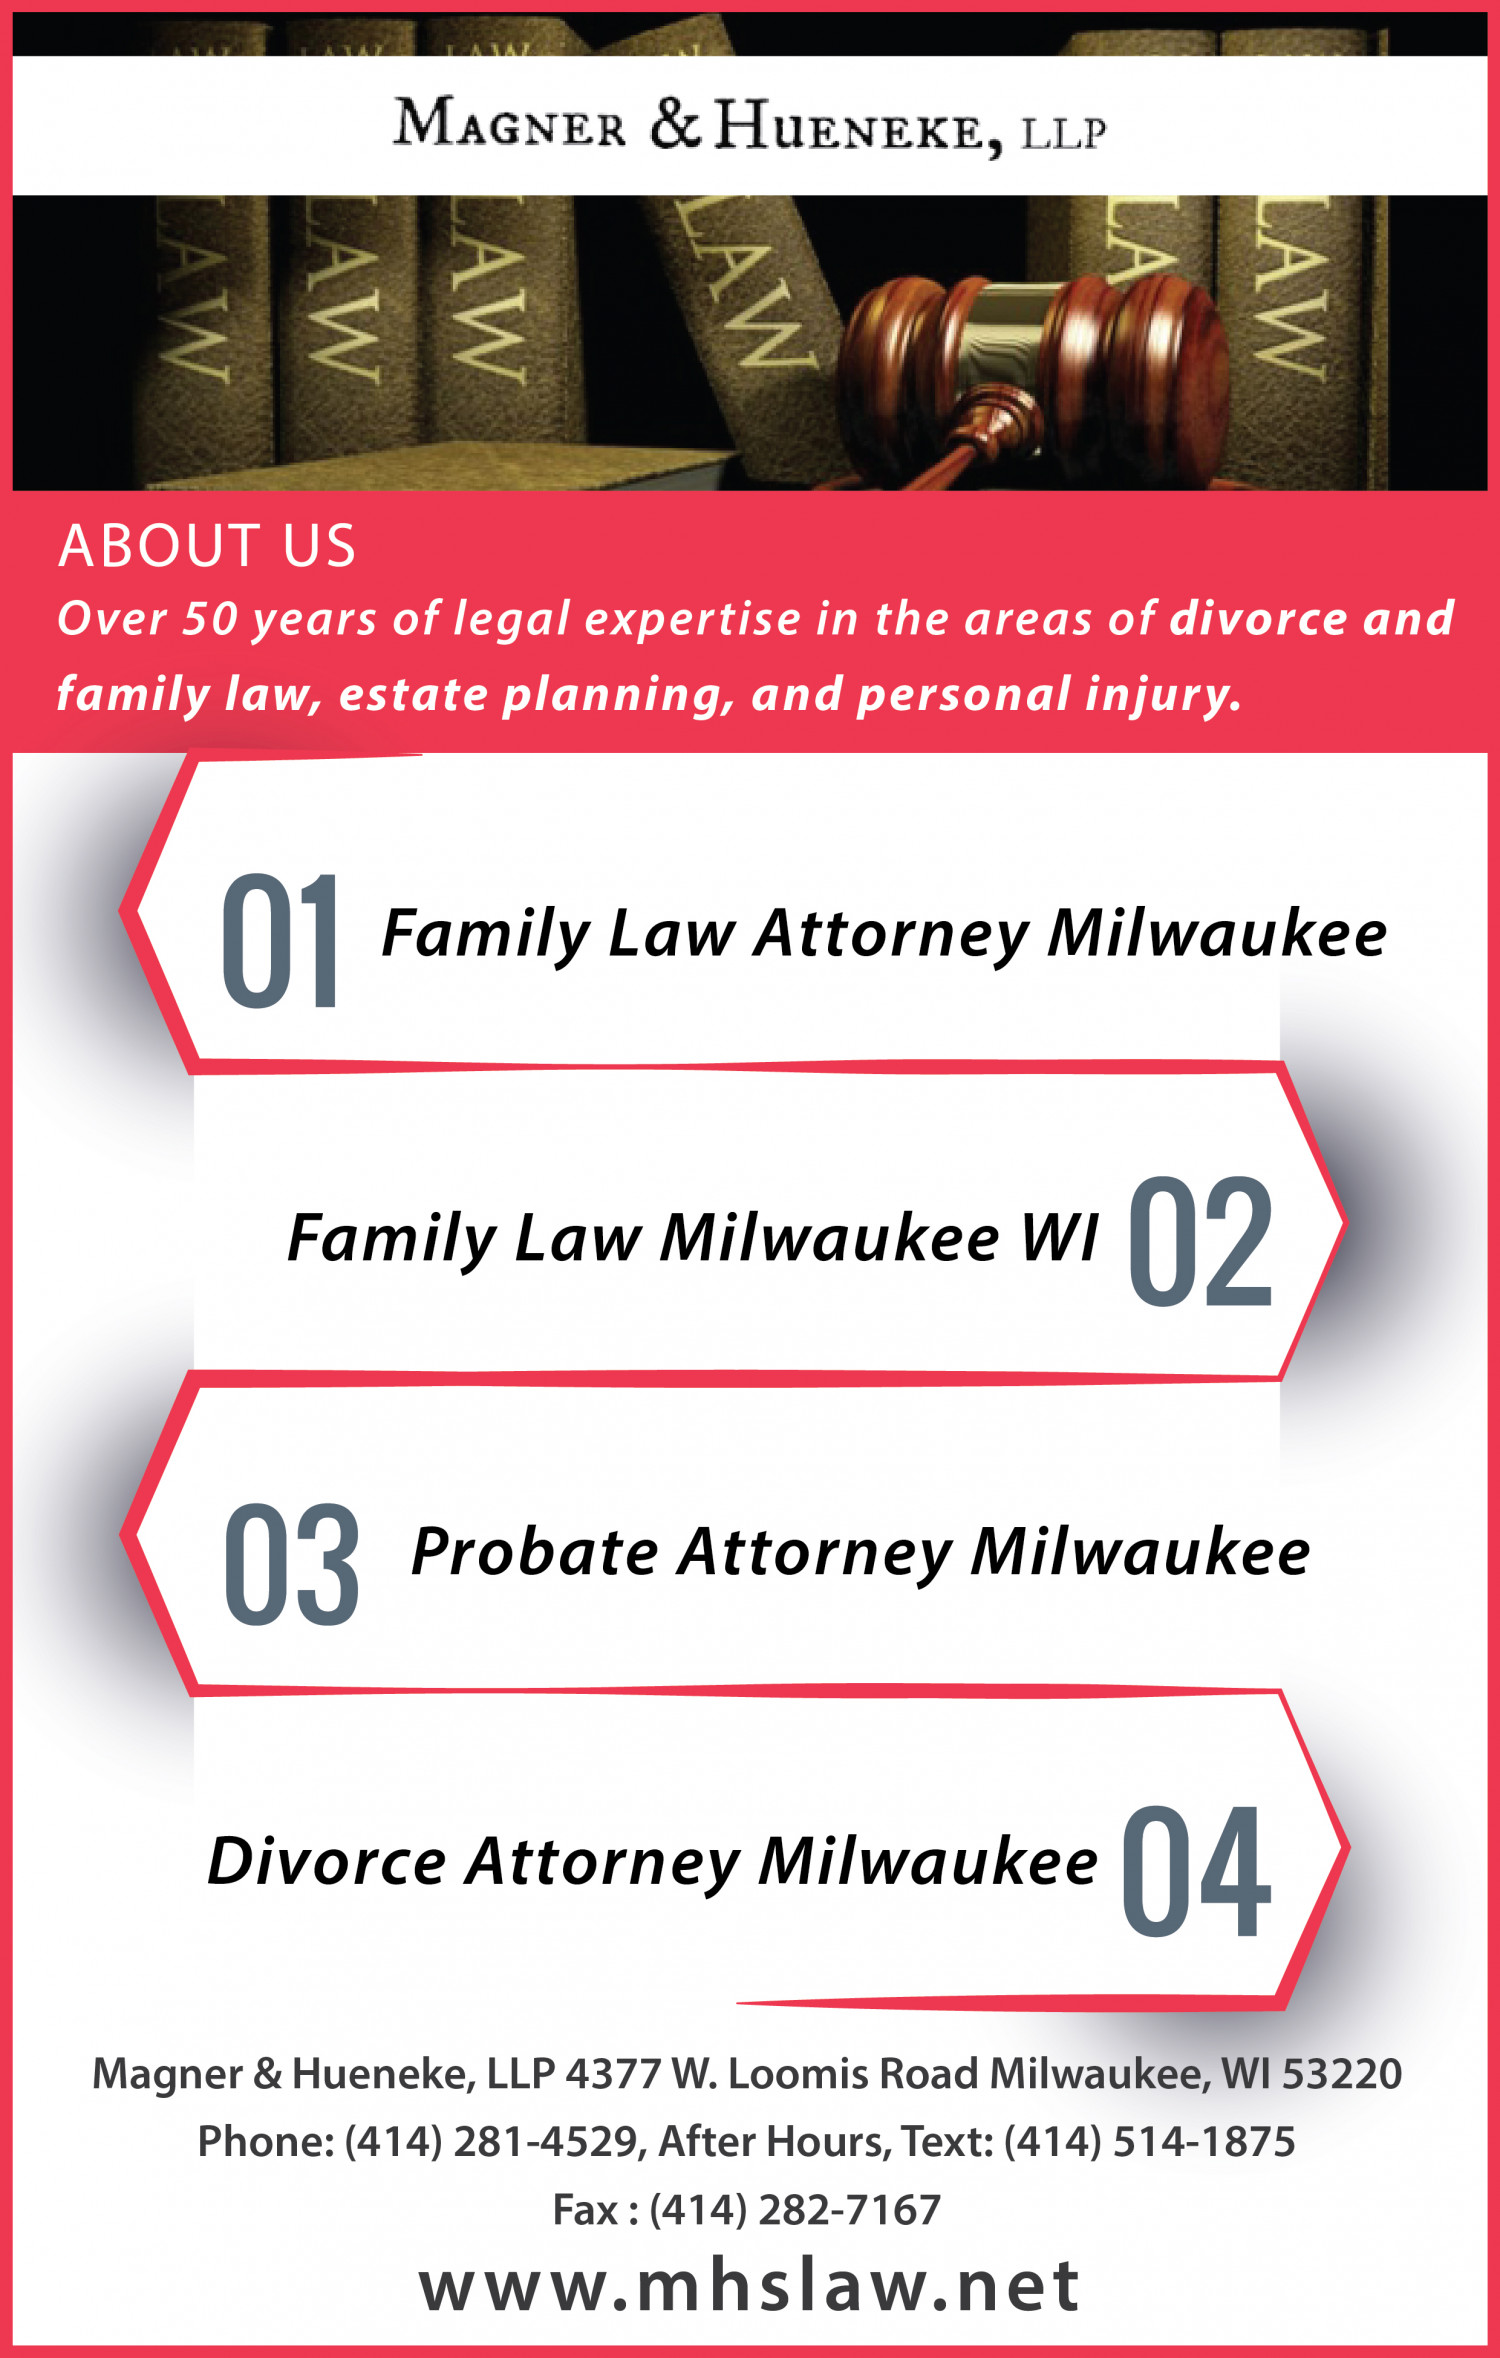 Family Law Attorney Milwaukee WI Infographic